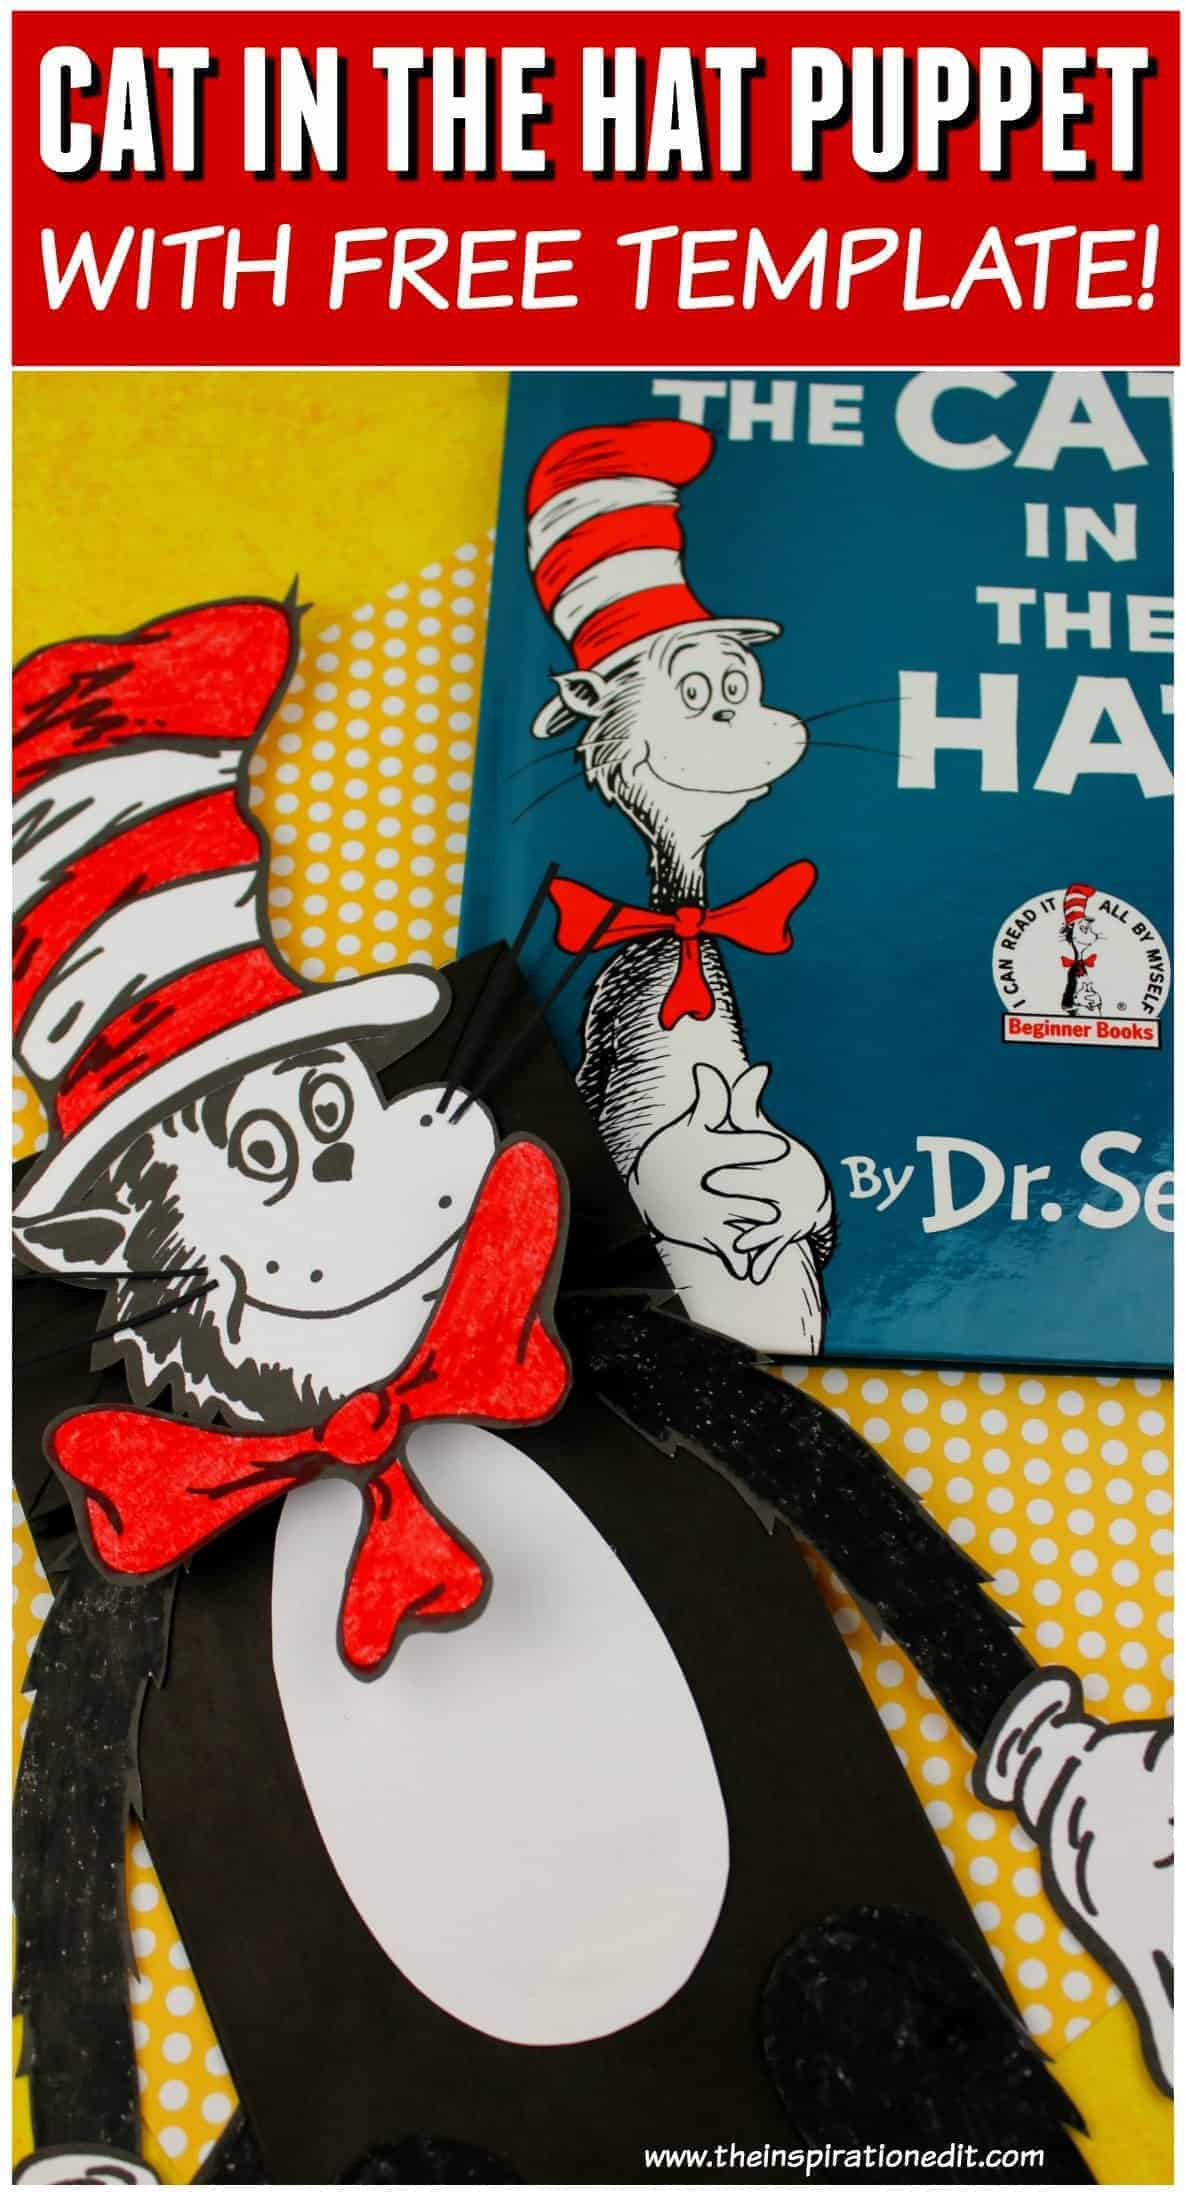 dr seuss puppet cat in the hat puppet idea with free cat template